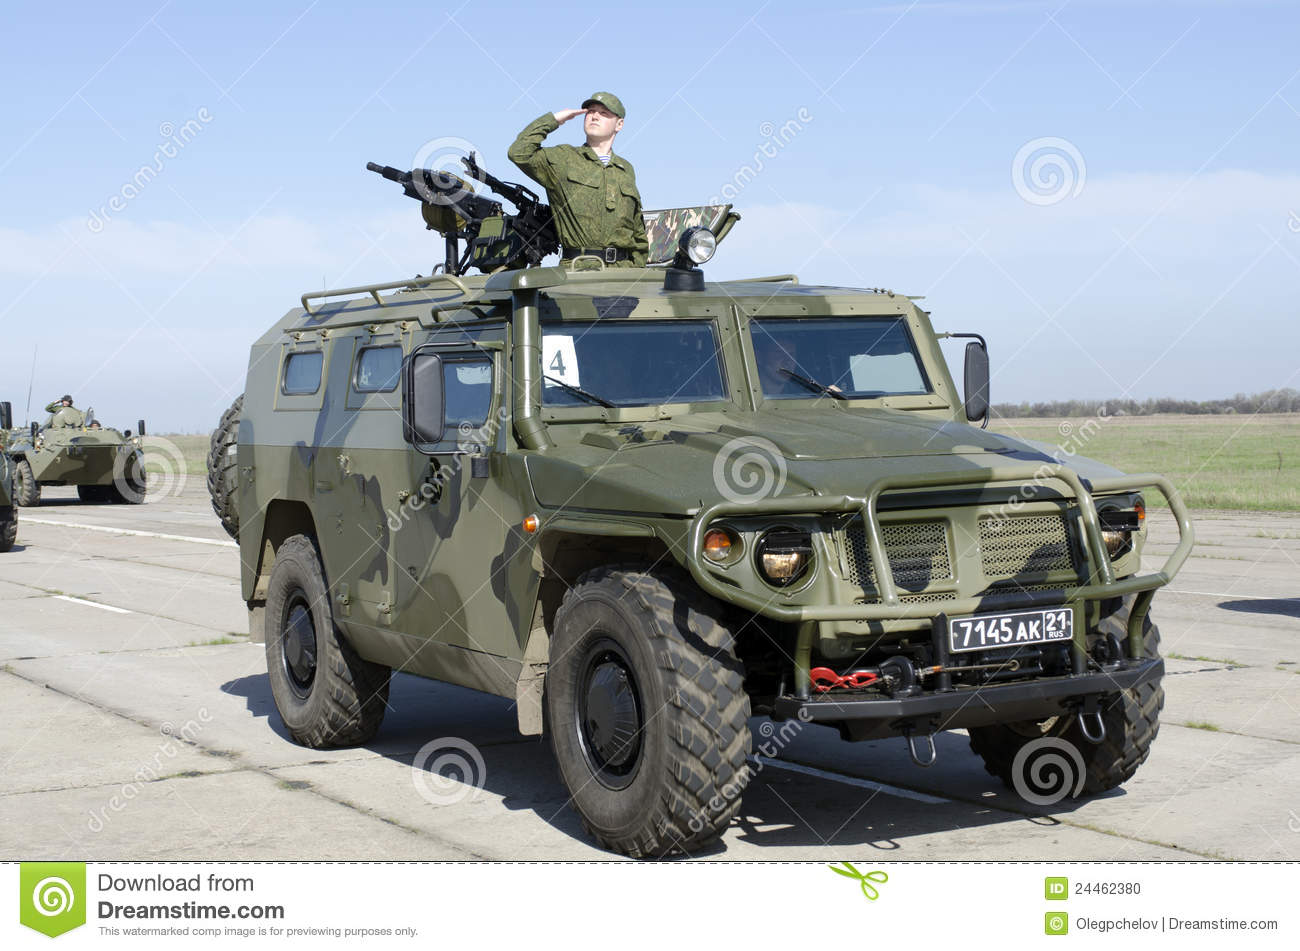 ... Victory in the great Patriotic war - the Russian military equipment